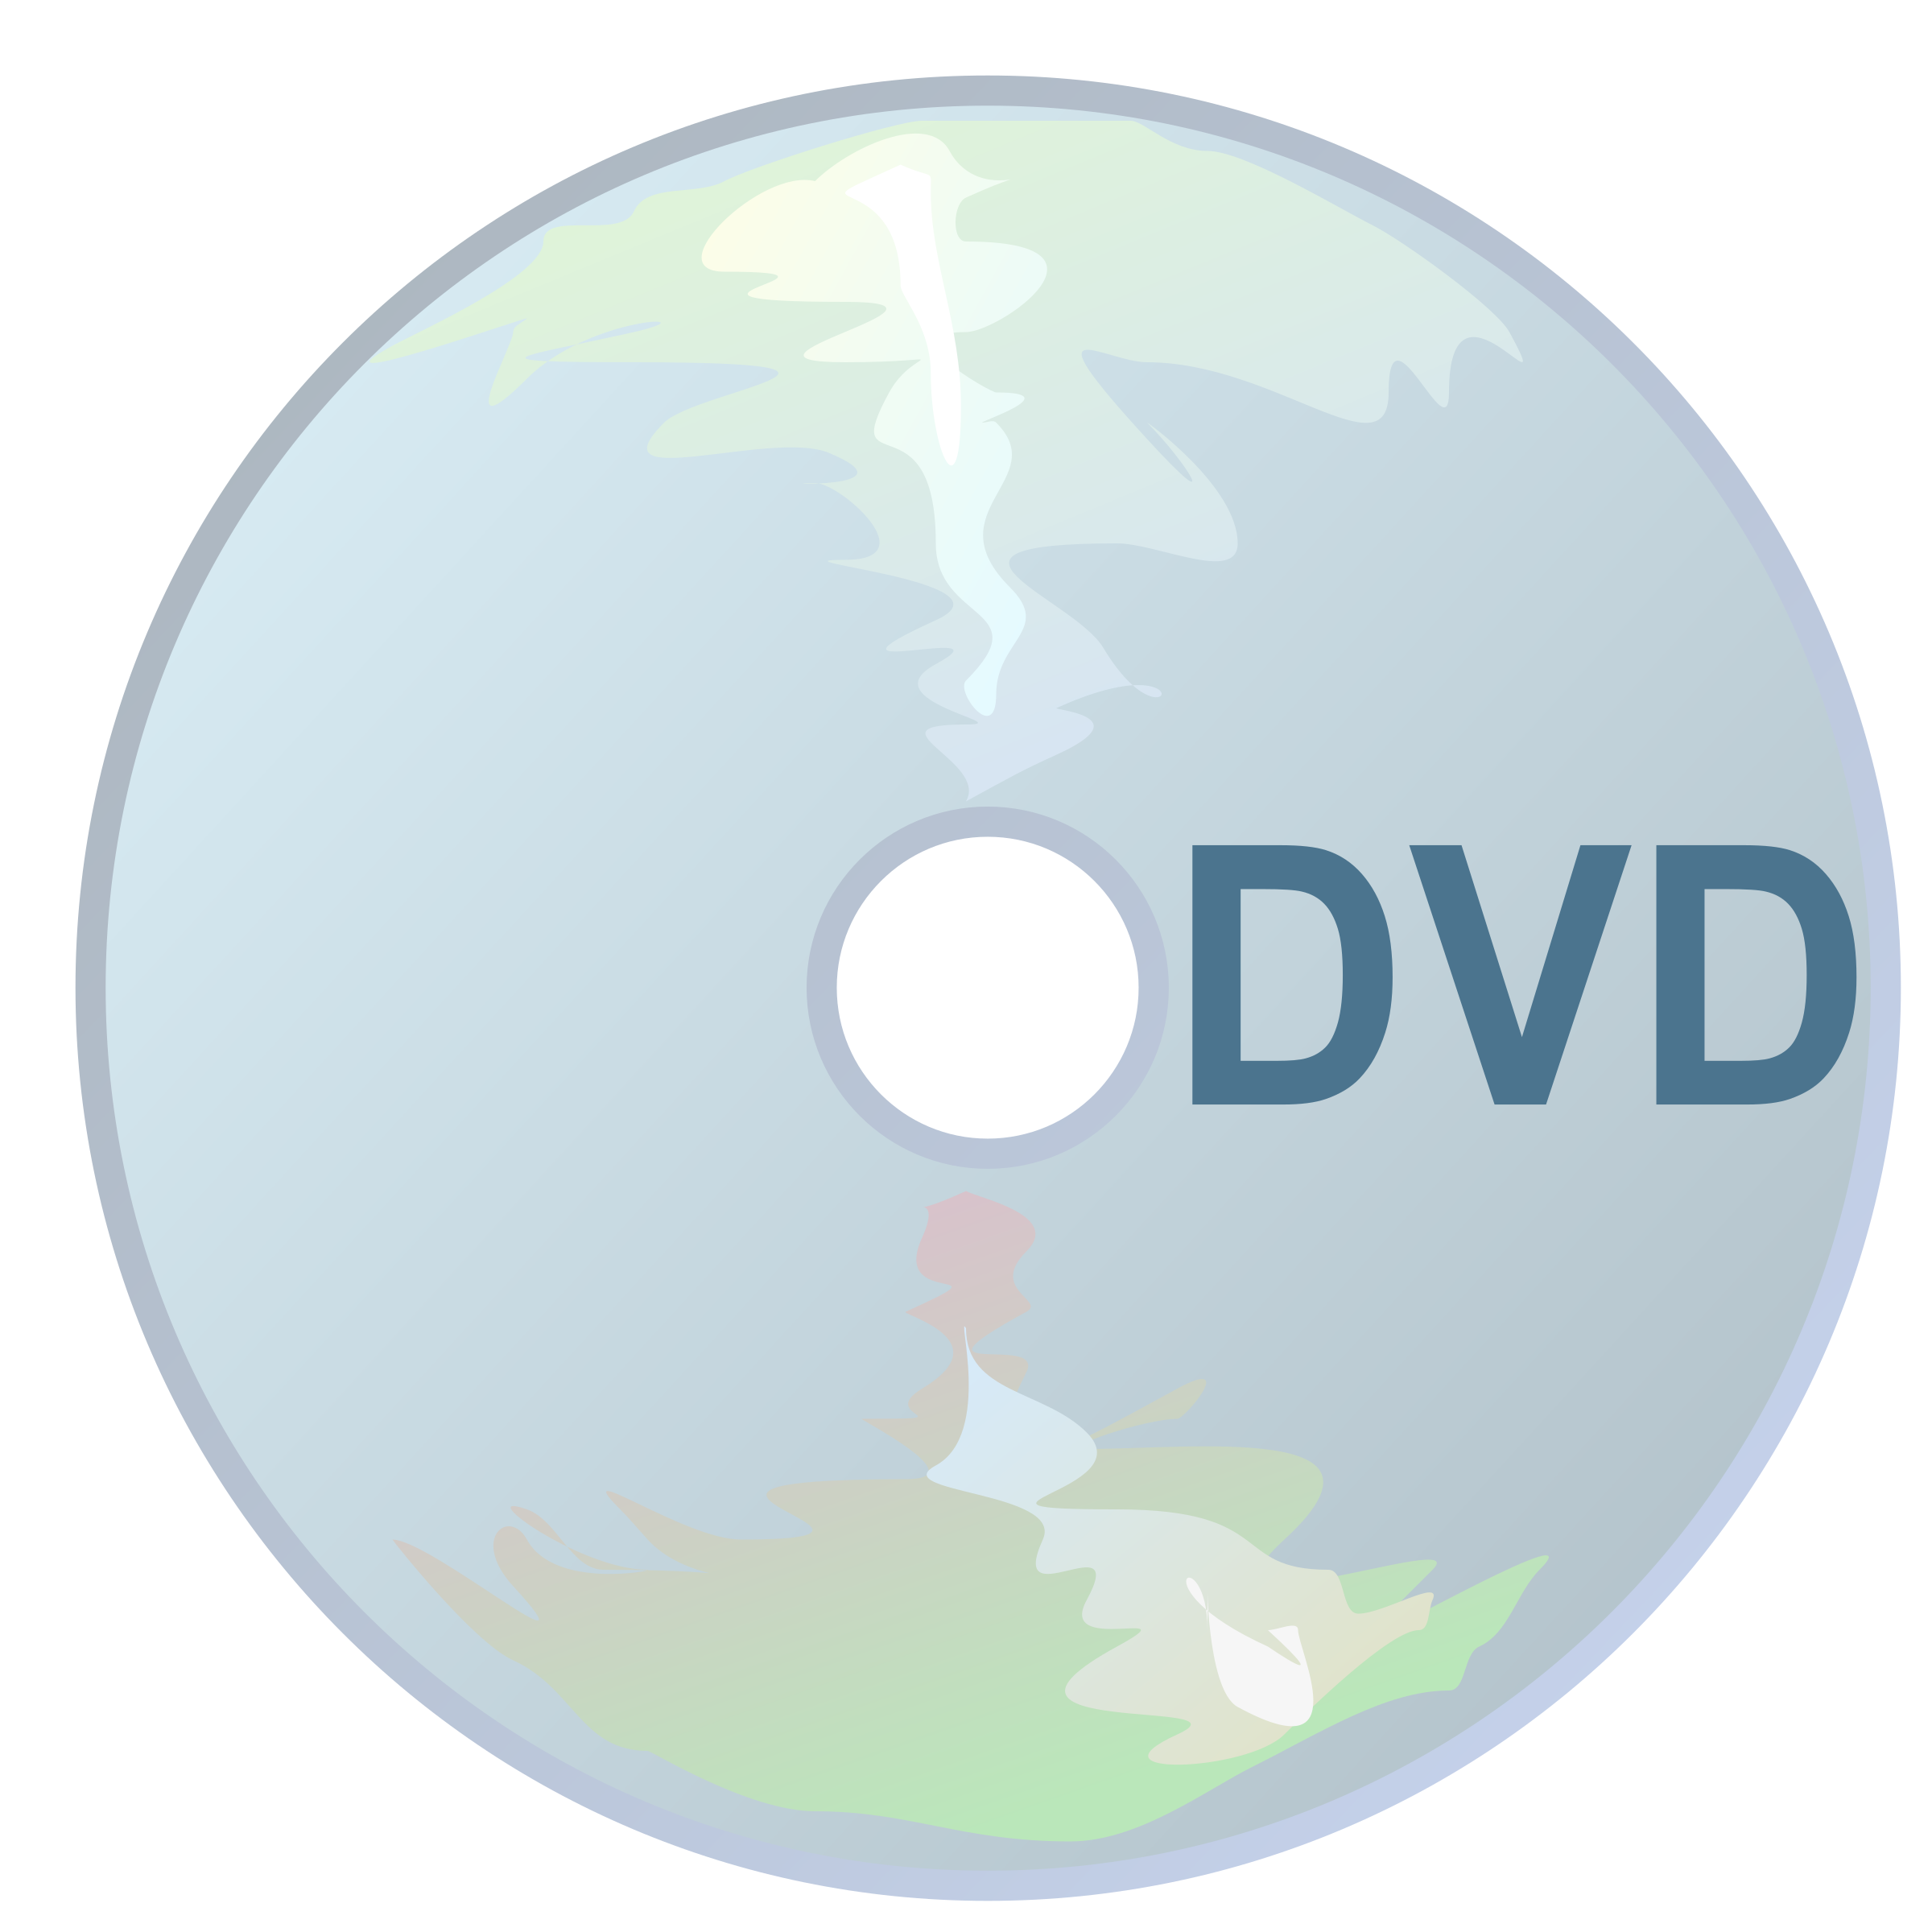 bb dvd  by Anonymous